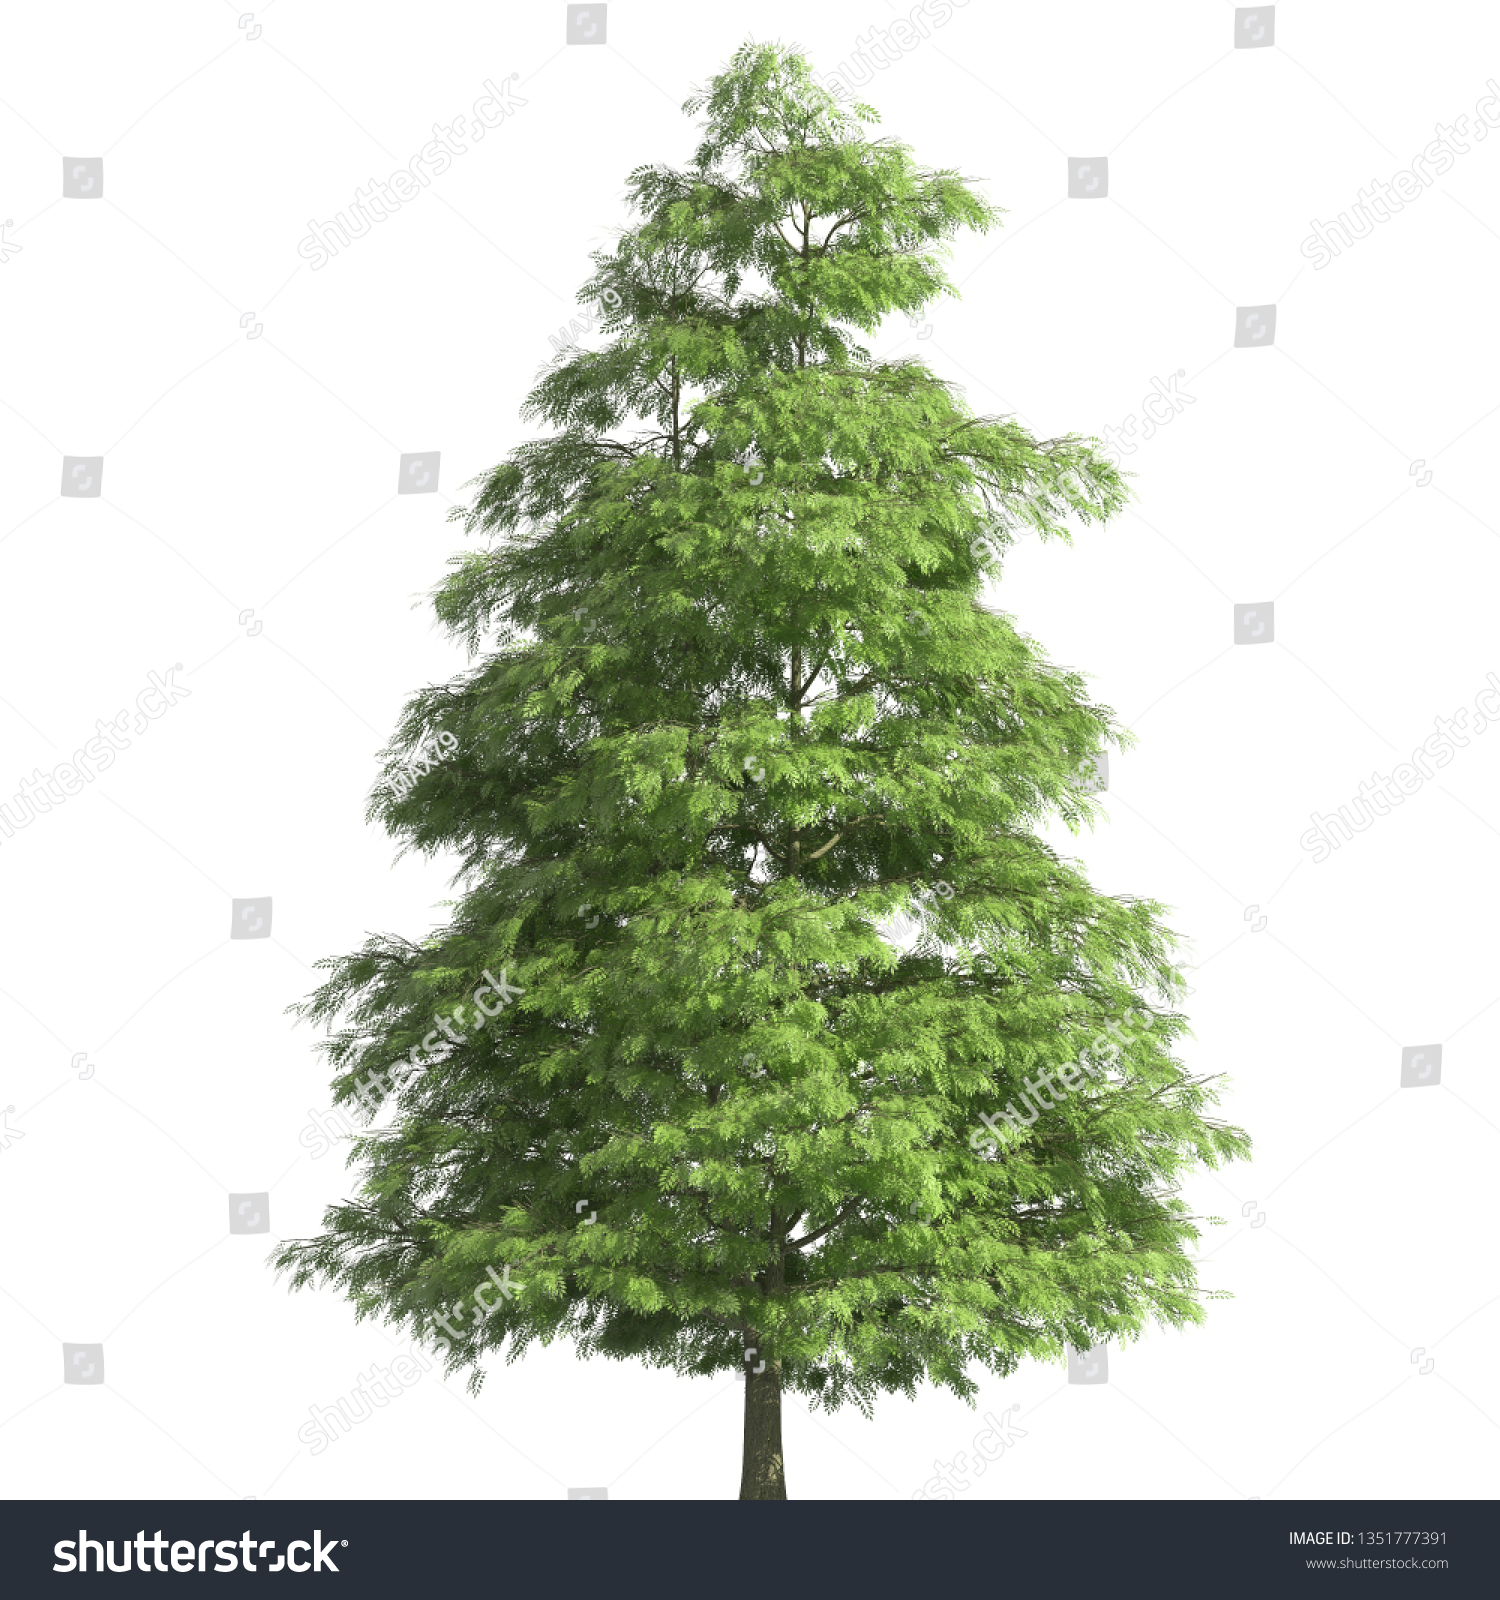 Tree 3d illustration isolated on the white background #1351777391